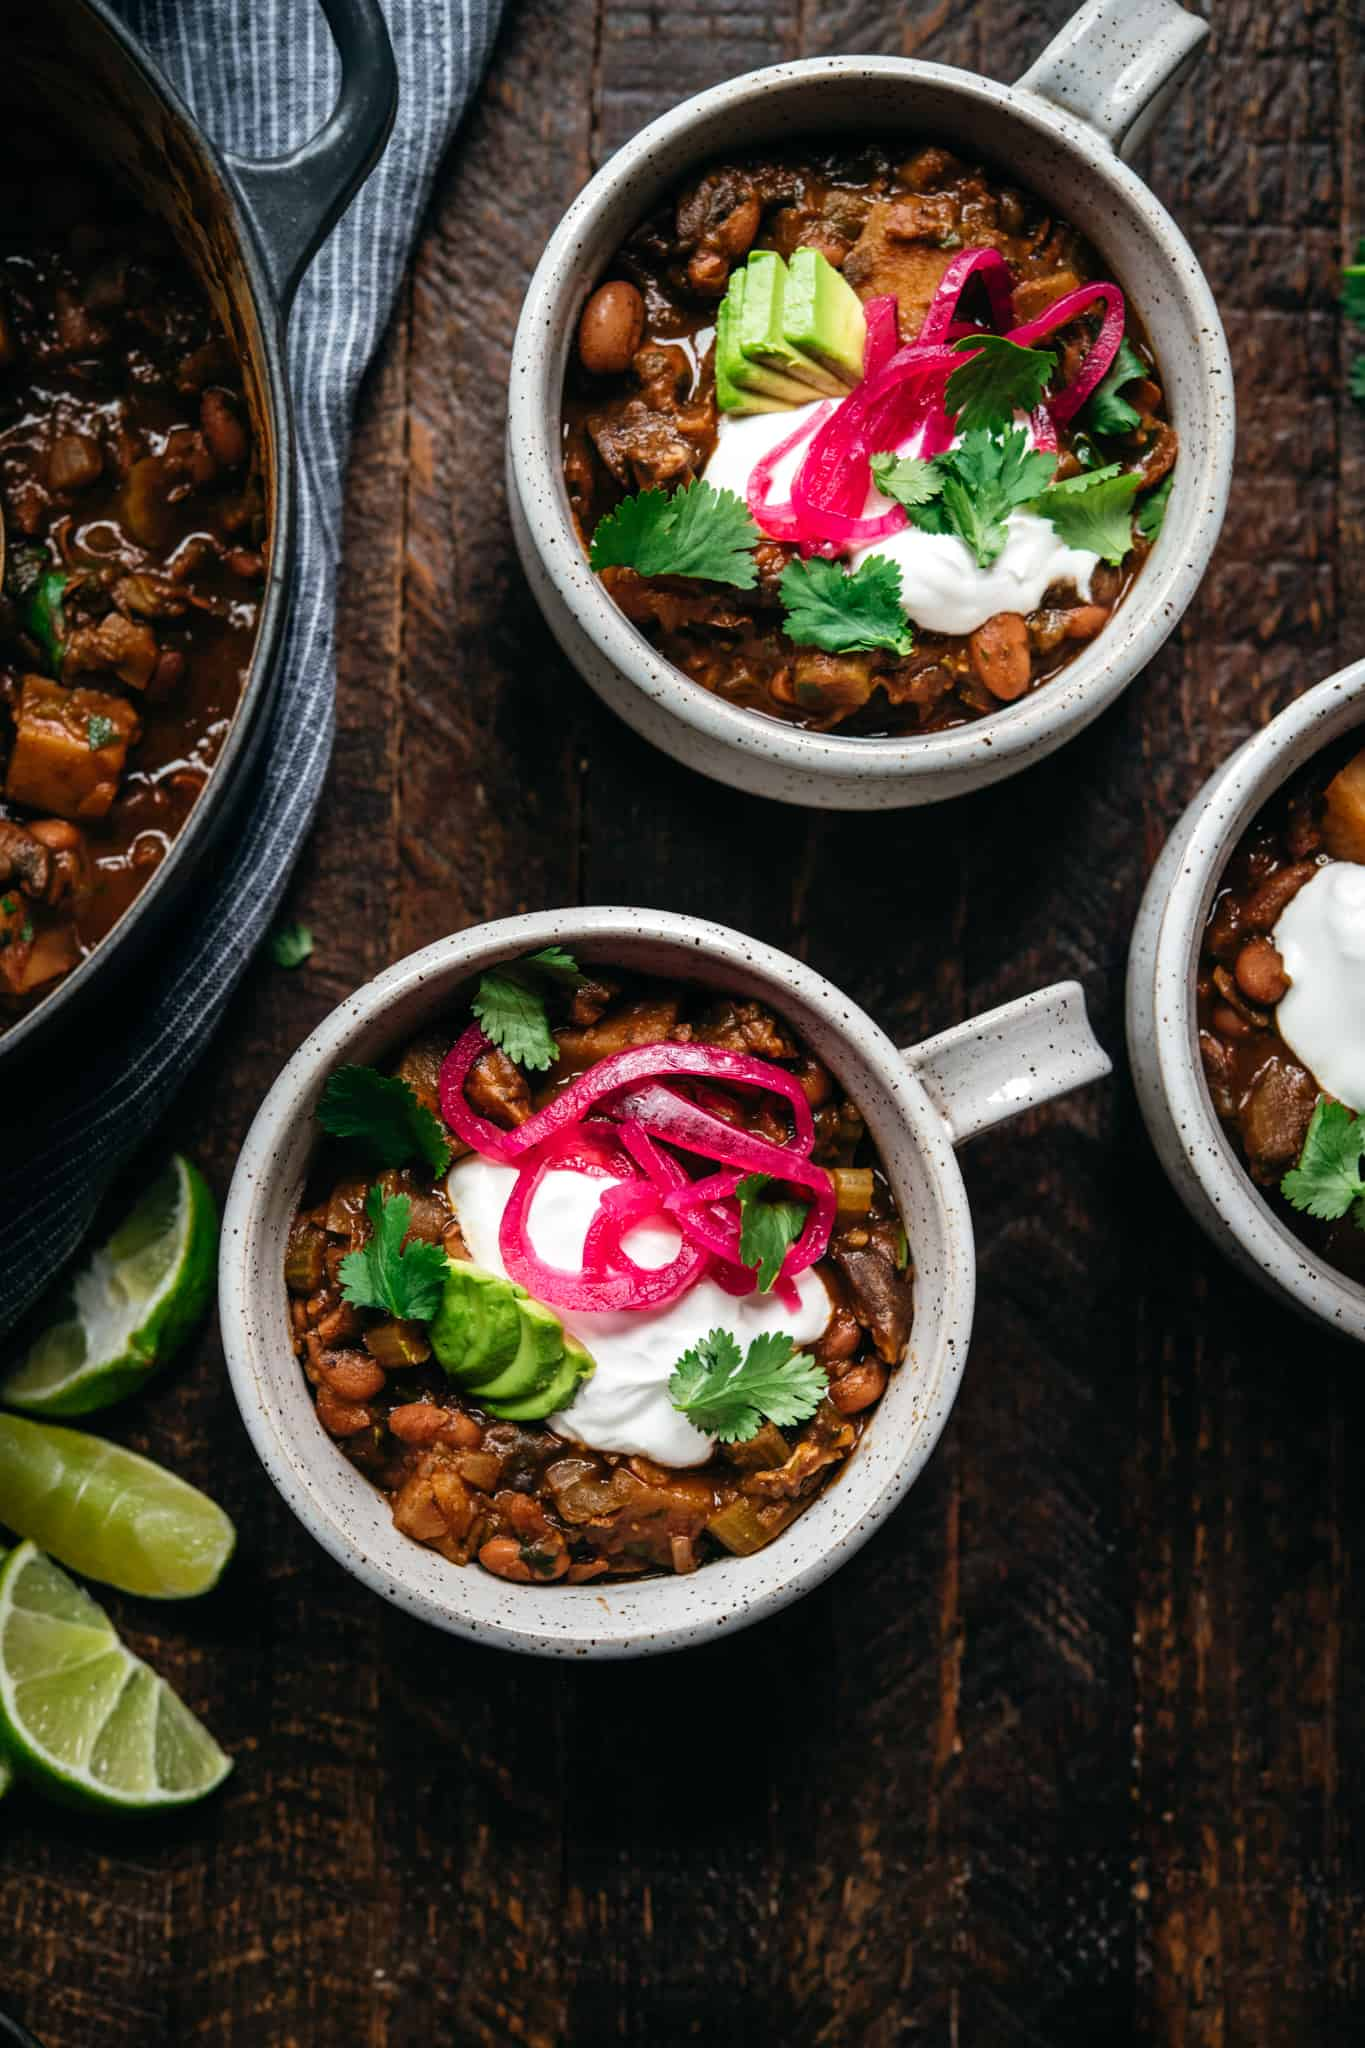 overhead view of vegan pinto bean chili in white ceramic bowls on wood background